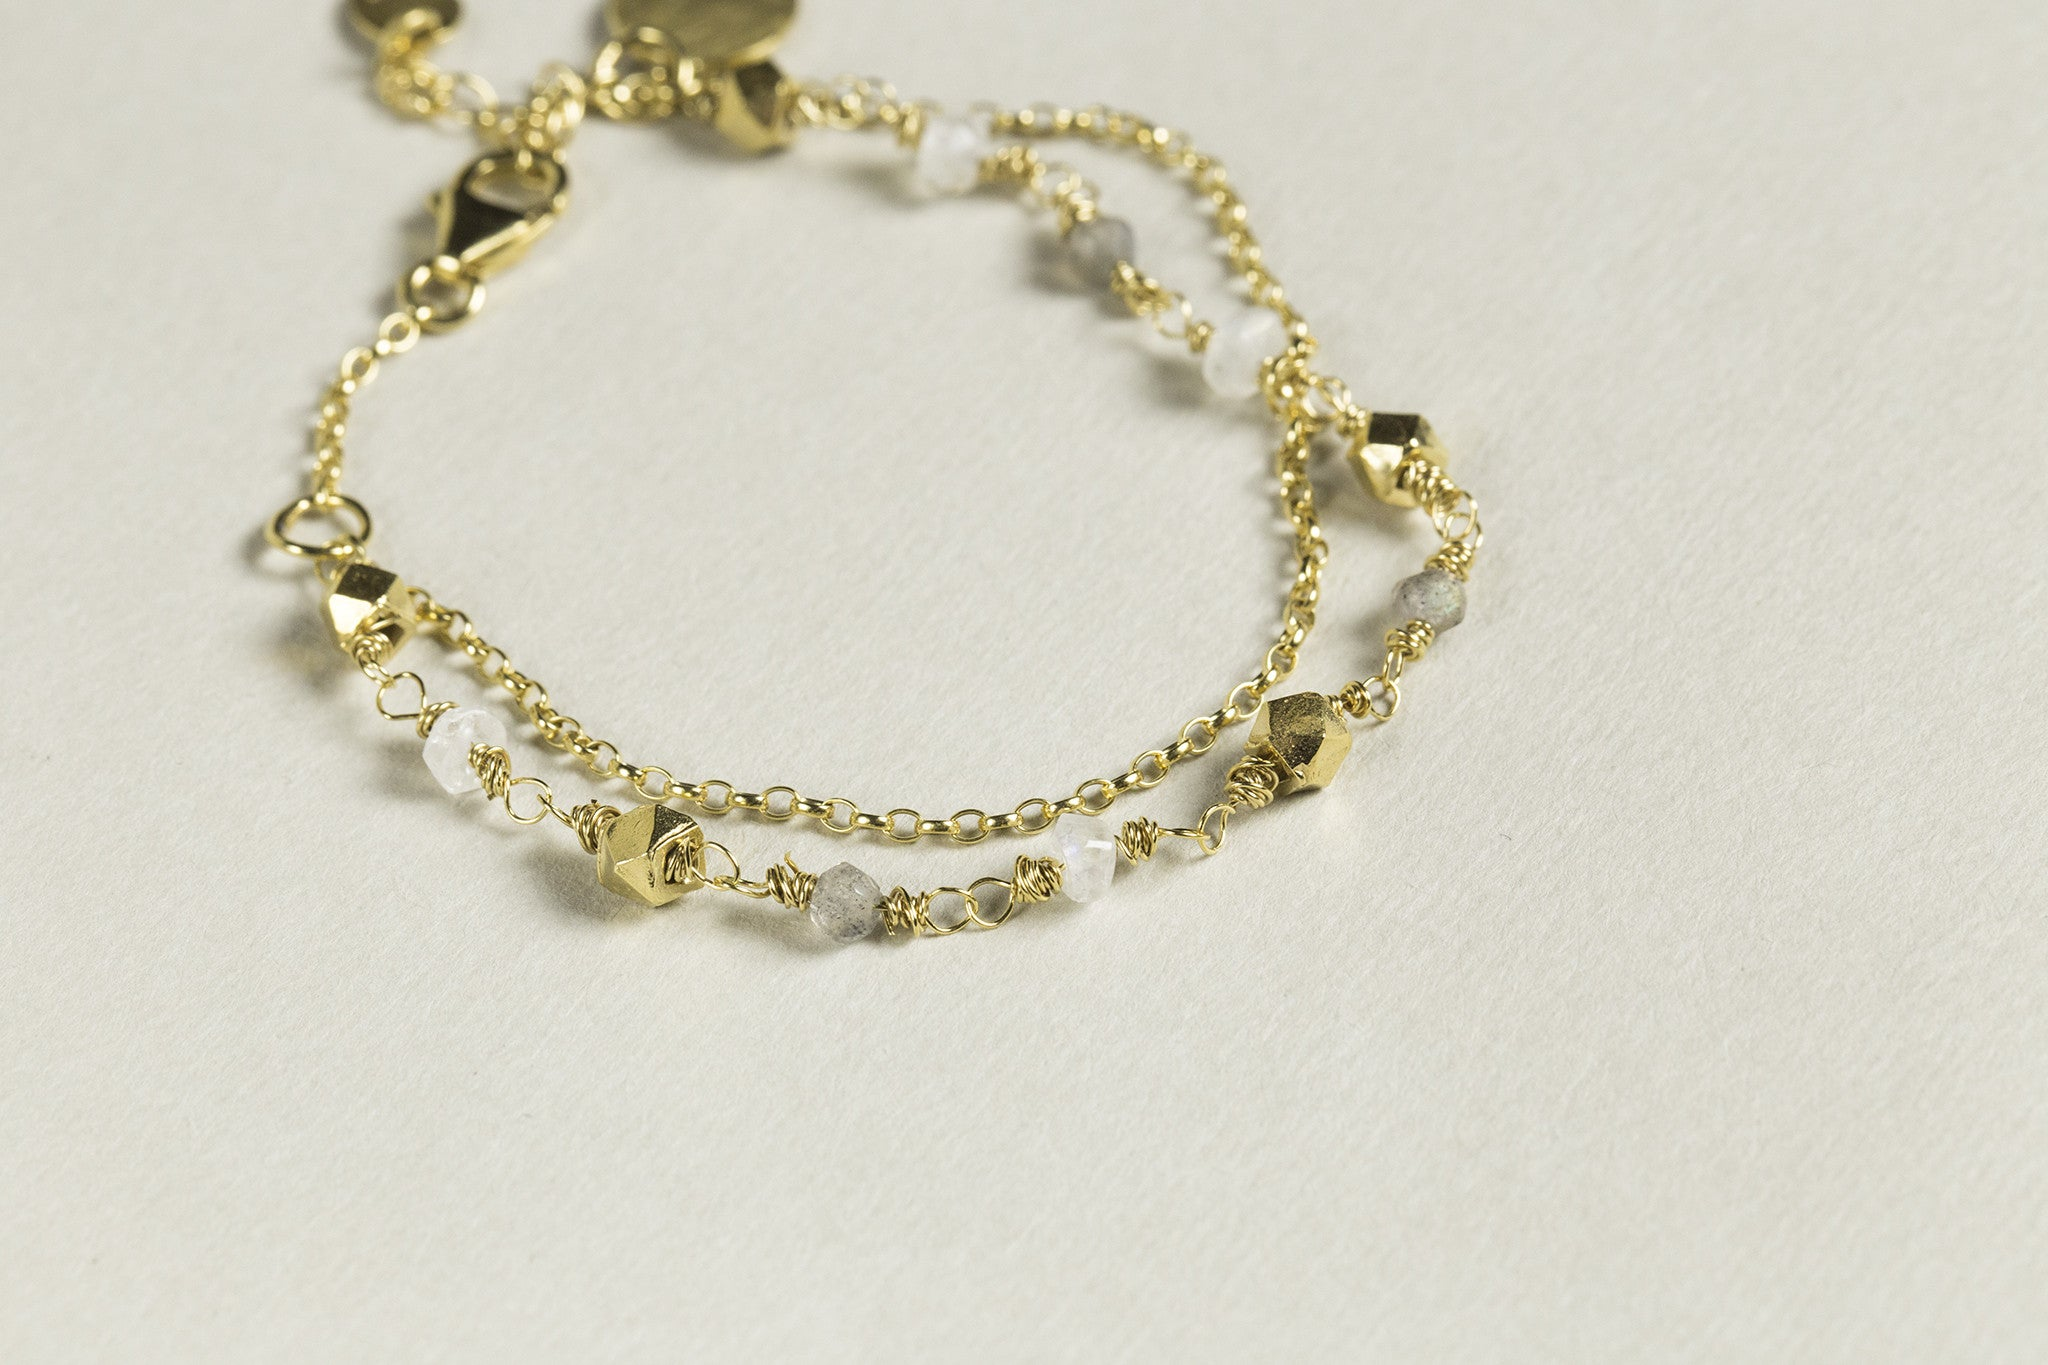 all components of the bracelet, except for the stones, are made of gold plated silver